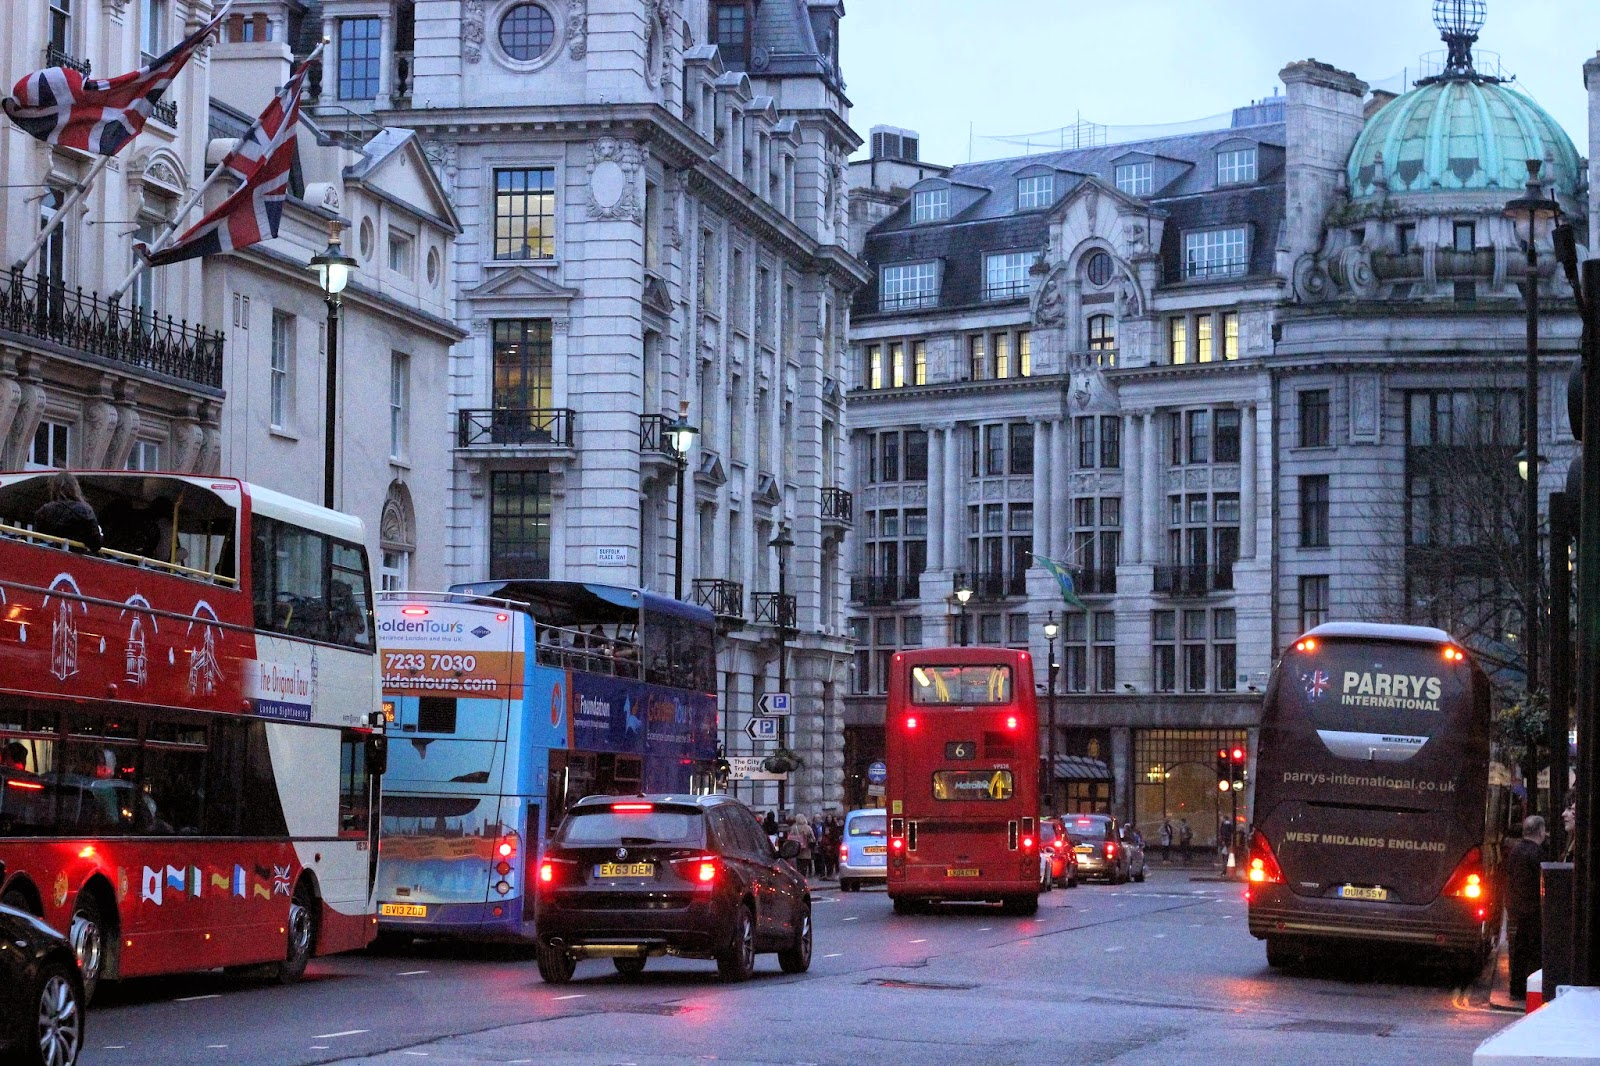 Picadilly Buses - Photograph by Art Style Love